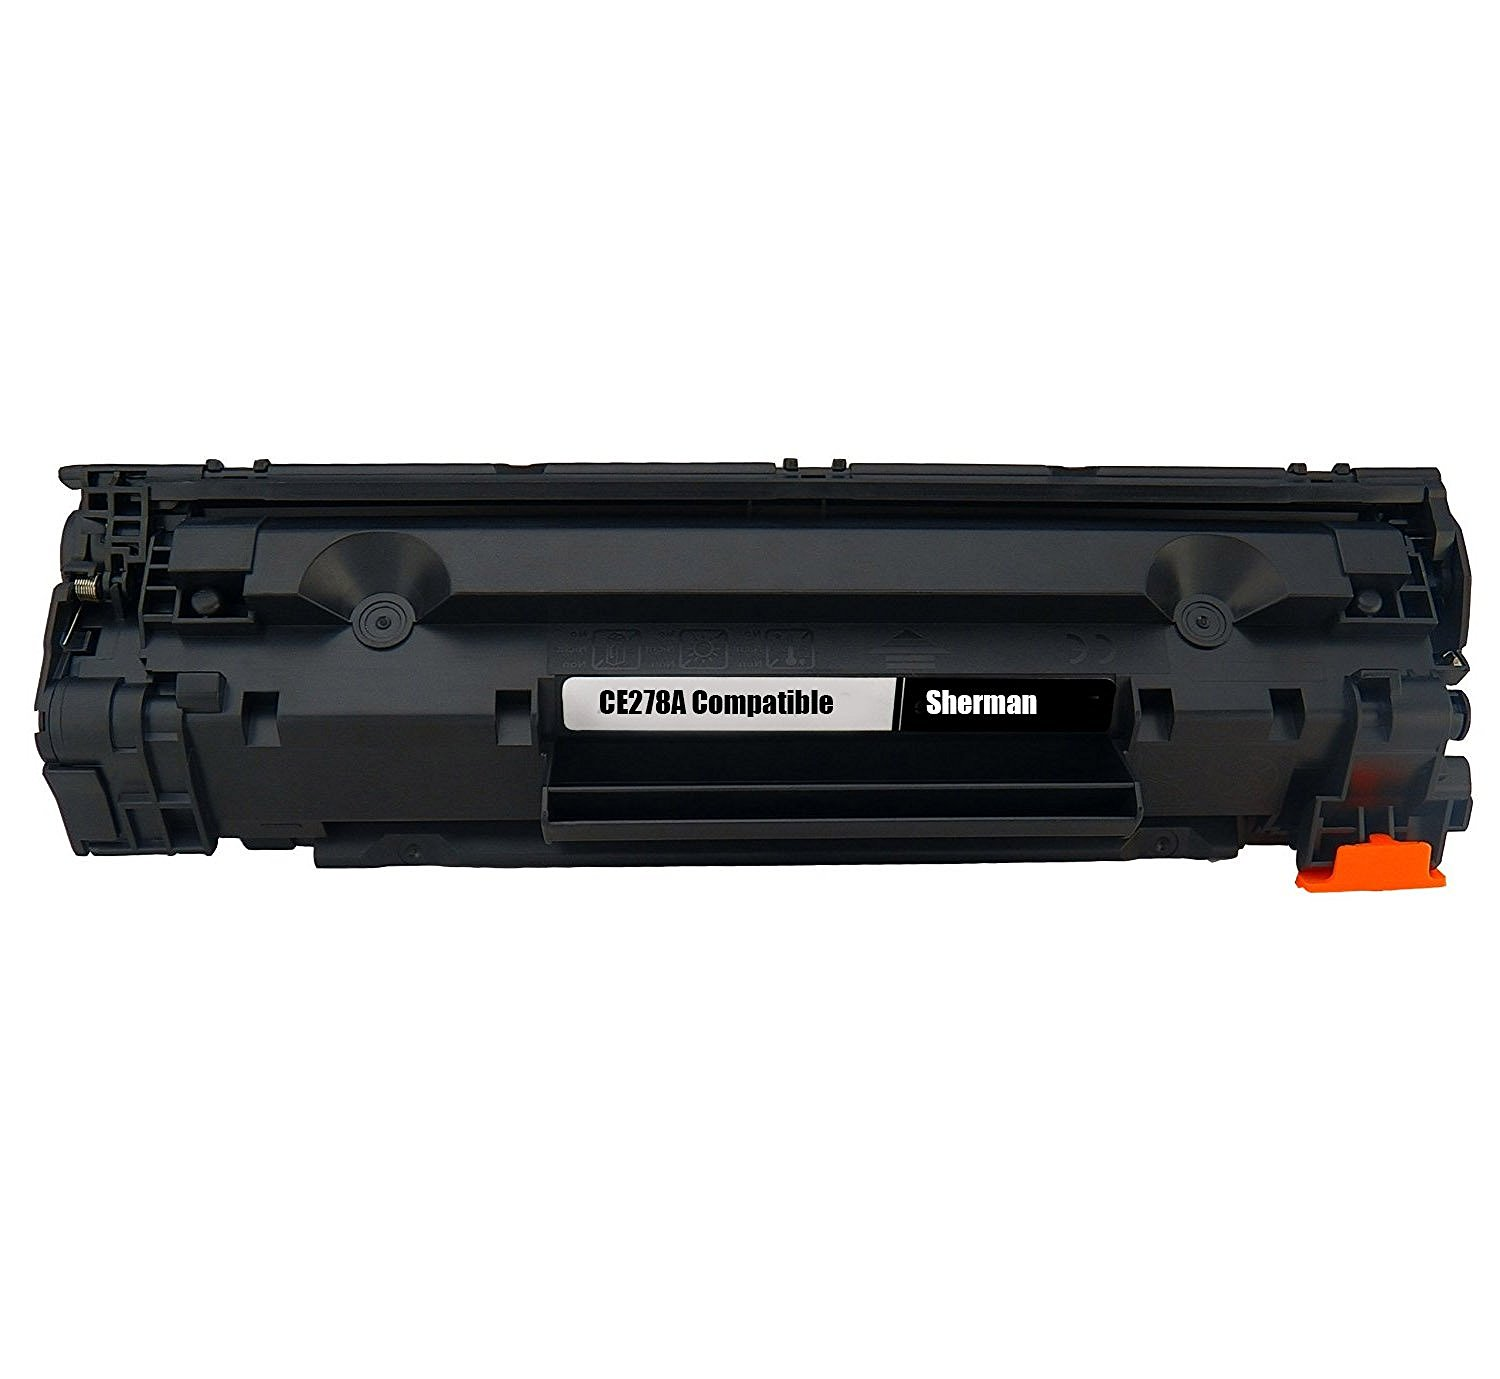 CE278A Toner Cartridge Replacement for HP Laserjet Pro P1606dn P1606 P1566 P1560 M1536dnf MFP M1537dnf MFP M1538dnf MFP M1530 MFP Printer,Sold by TopInk 2 Black 78A